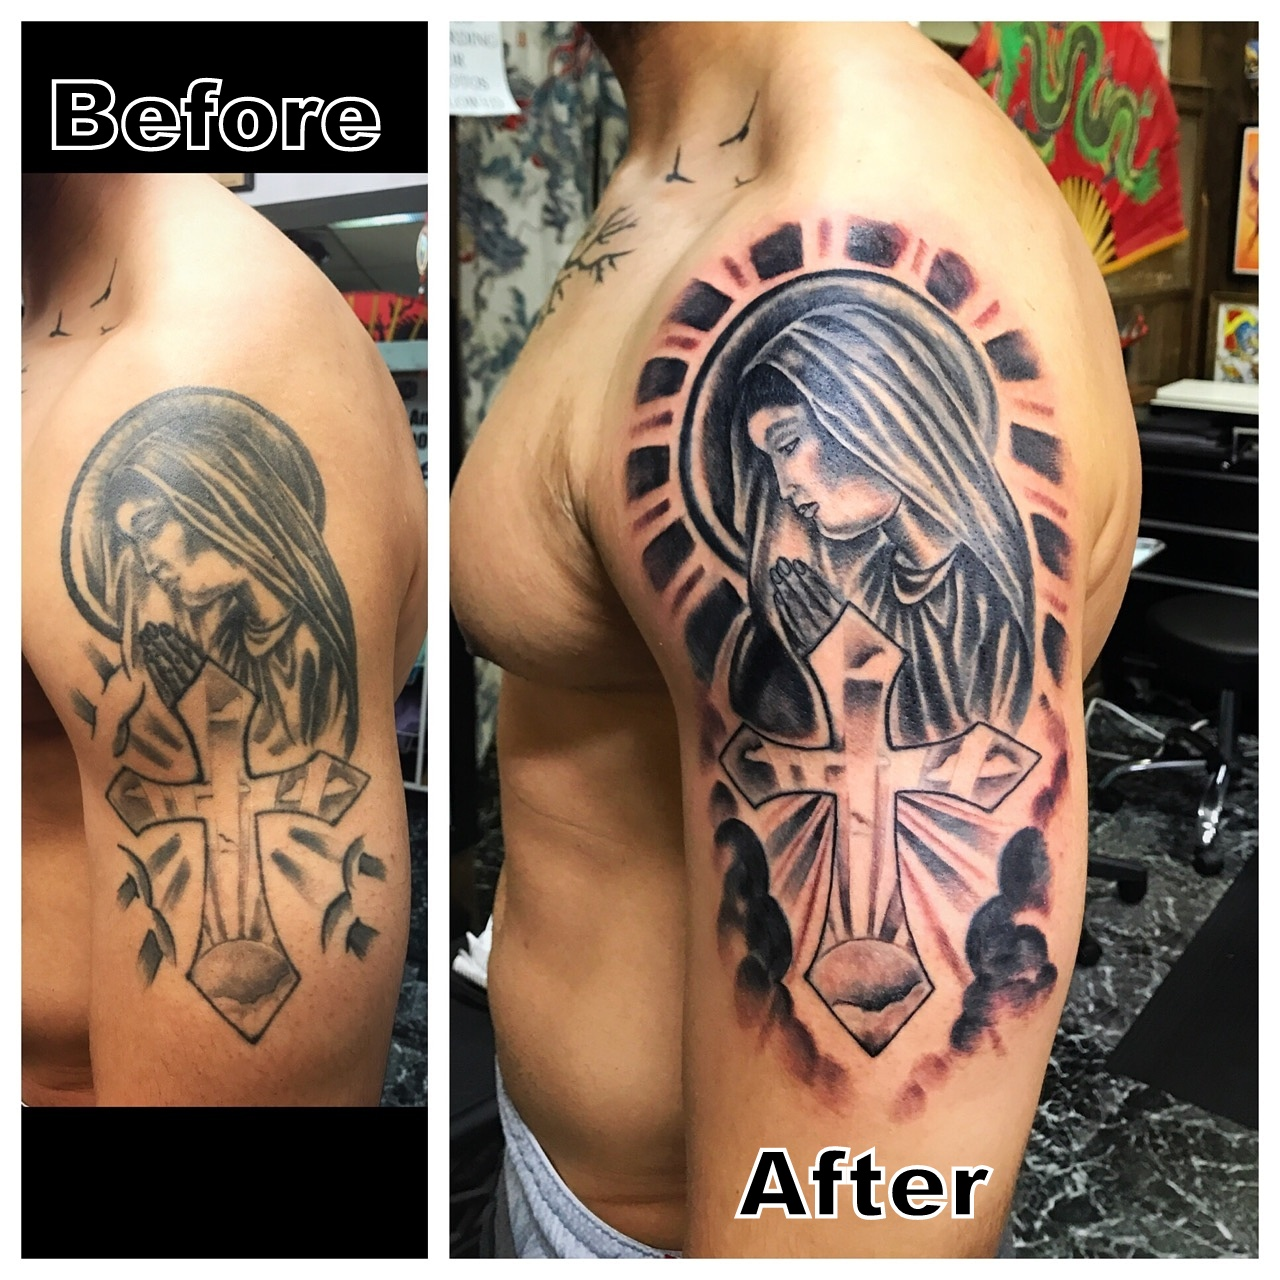 Tattoo Restoration Mary with Cross Tatto